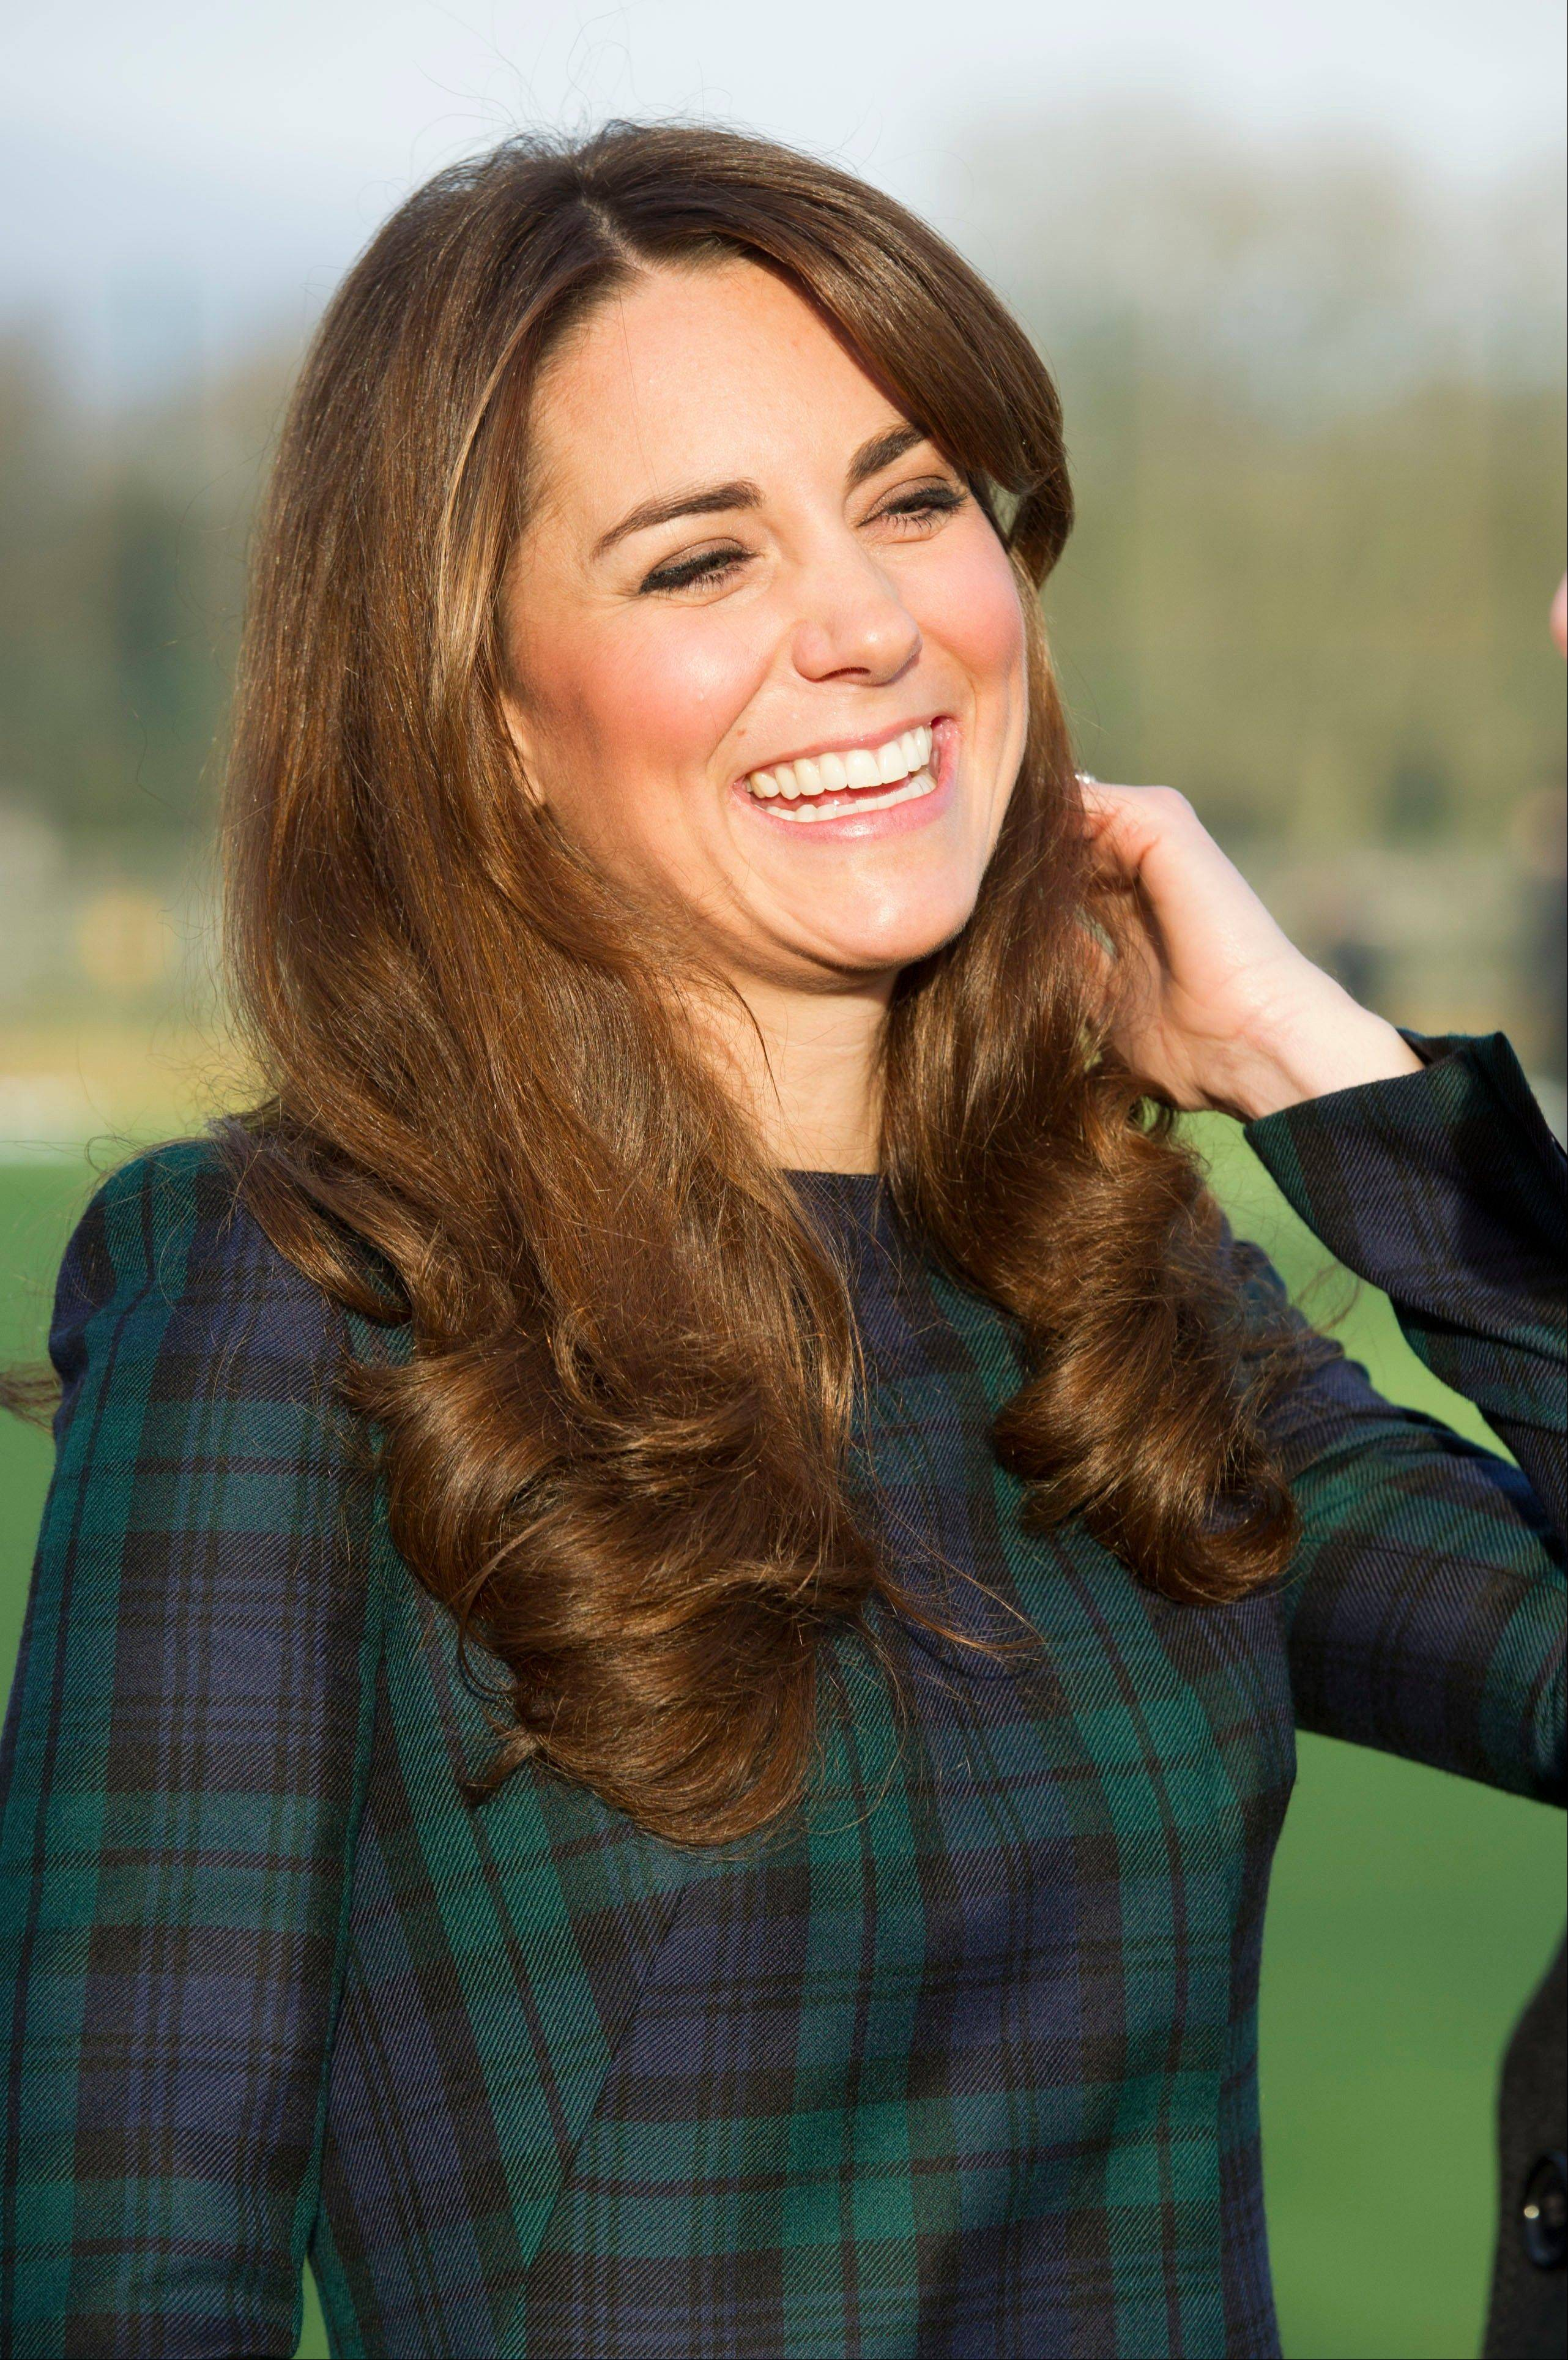 Kate, the Duchess of Cambridge, is expecting a baby, St James's Palace officially announced Monday.